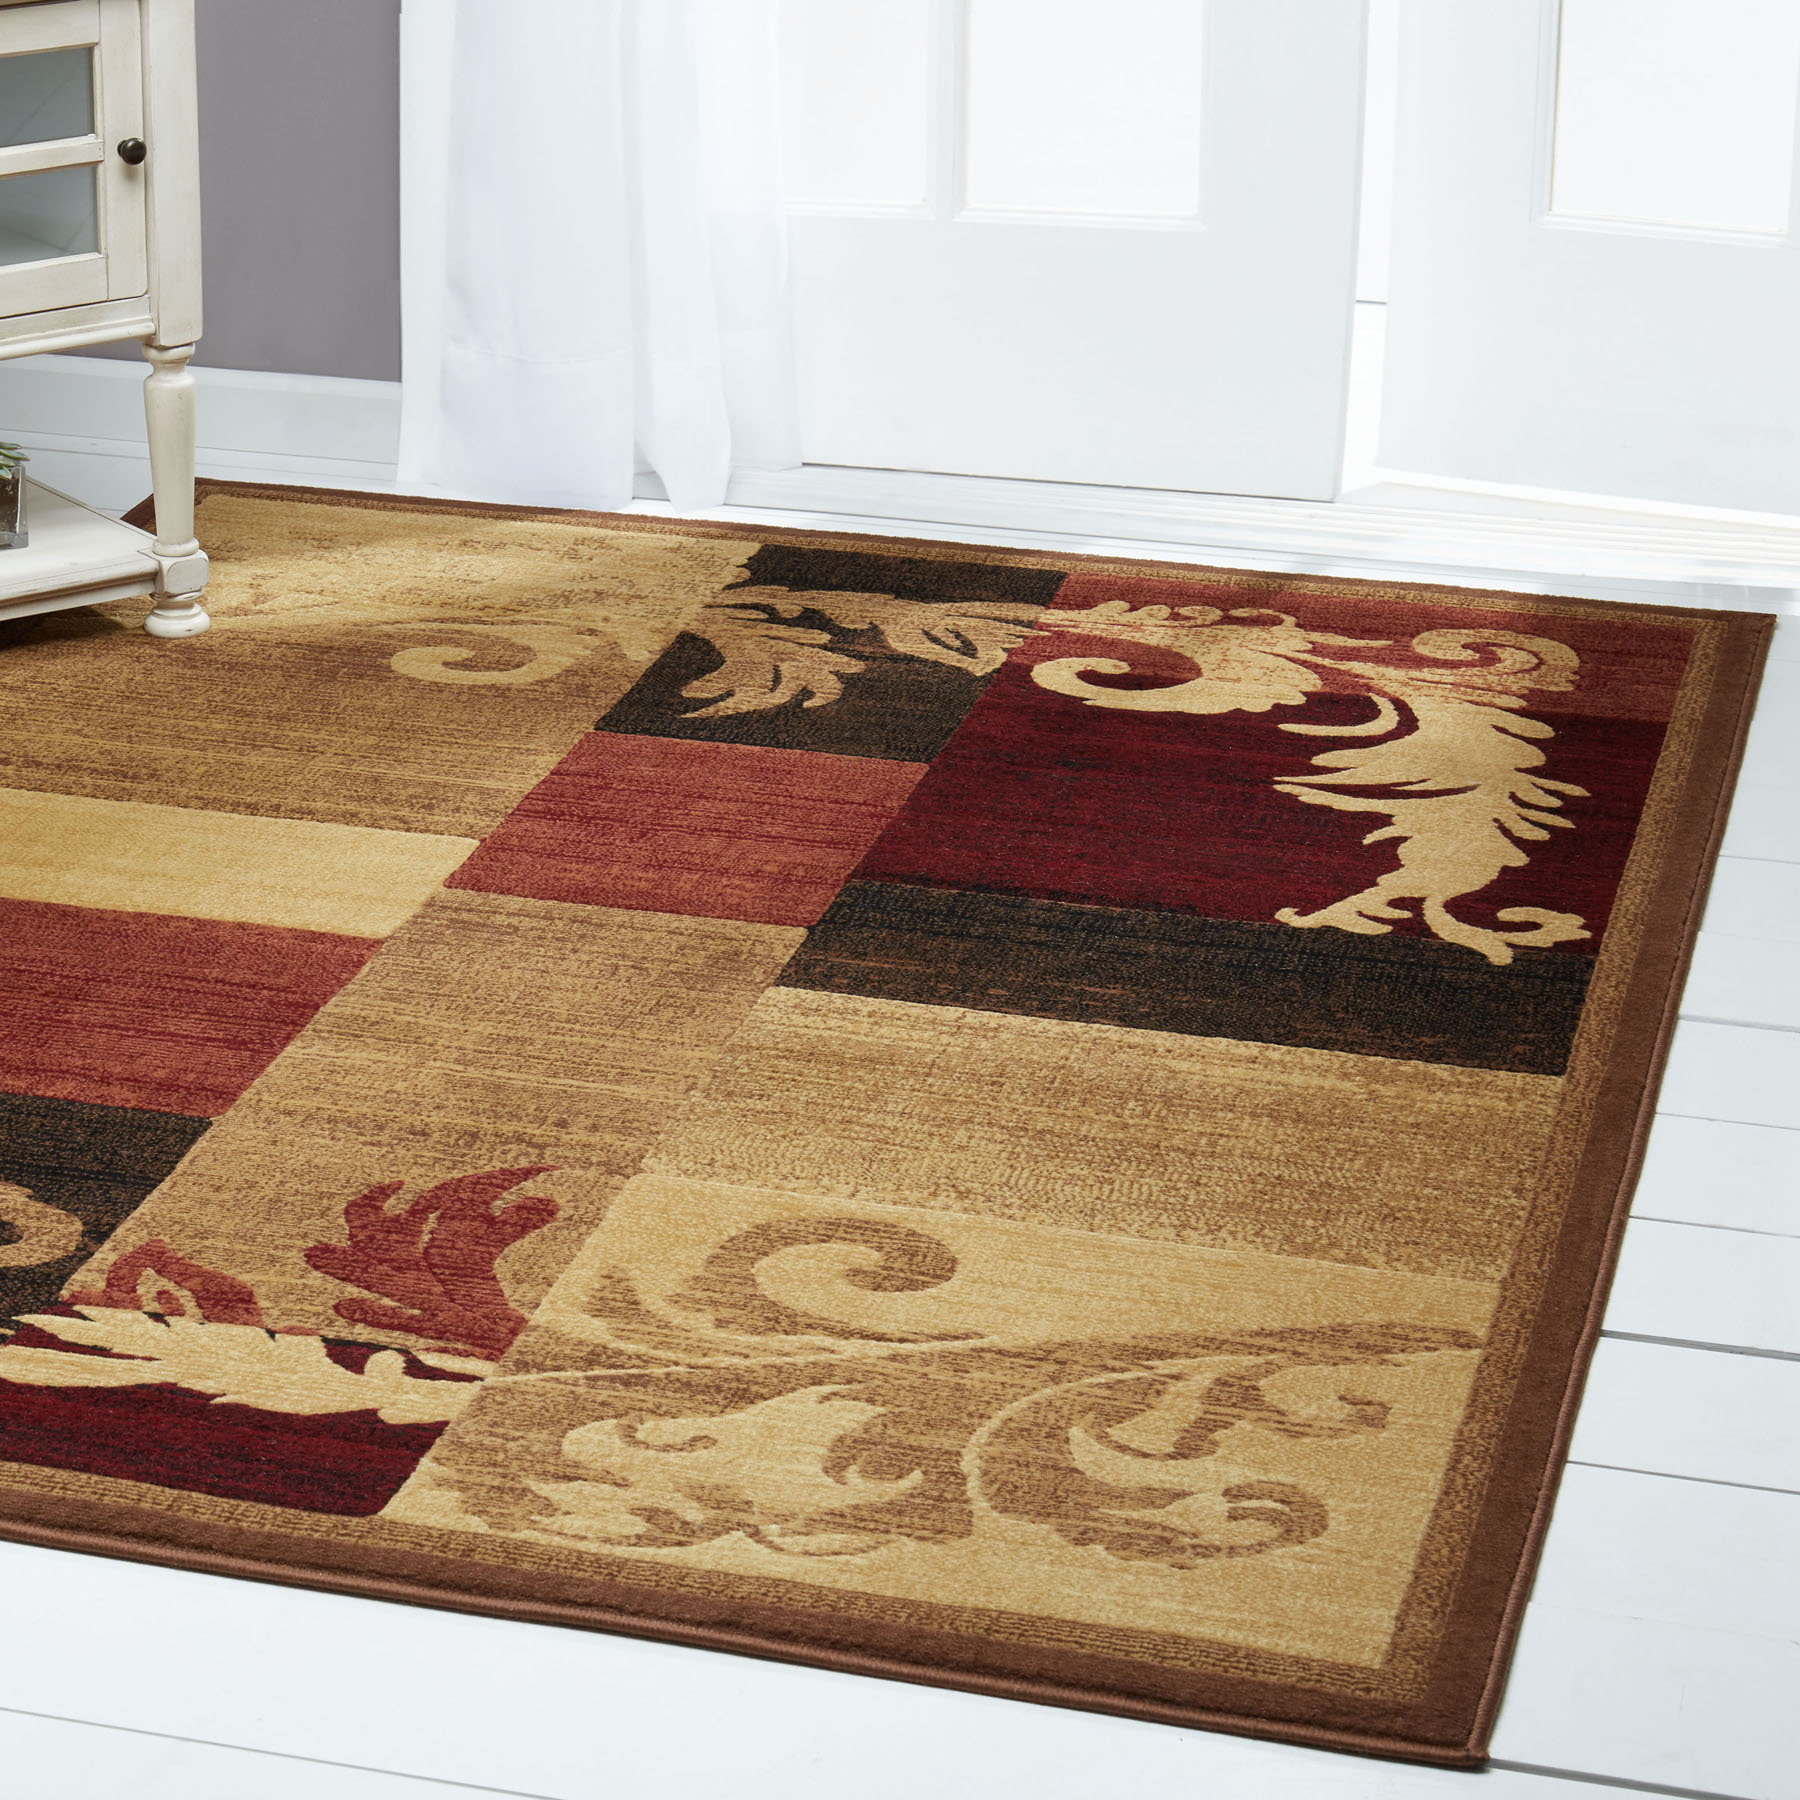 Modern Brown Red Burgundy 4x6 Area Rug Geometric Carpet Approx 3 3 X 5 2 643845201869 Ebay